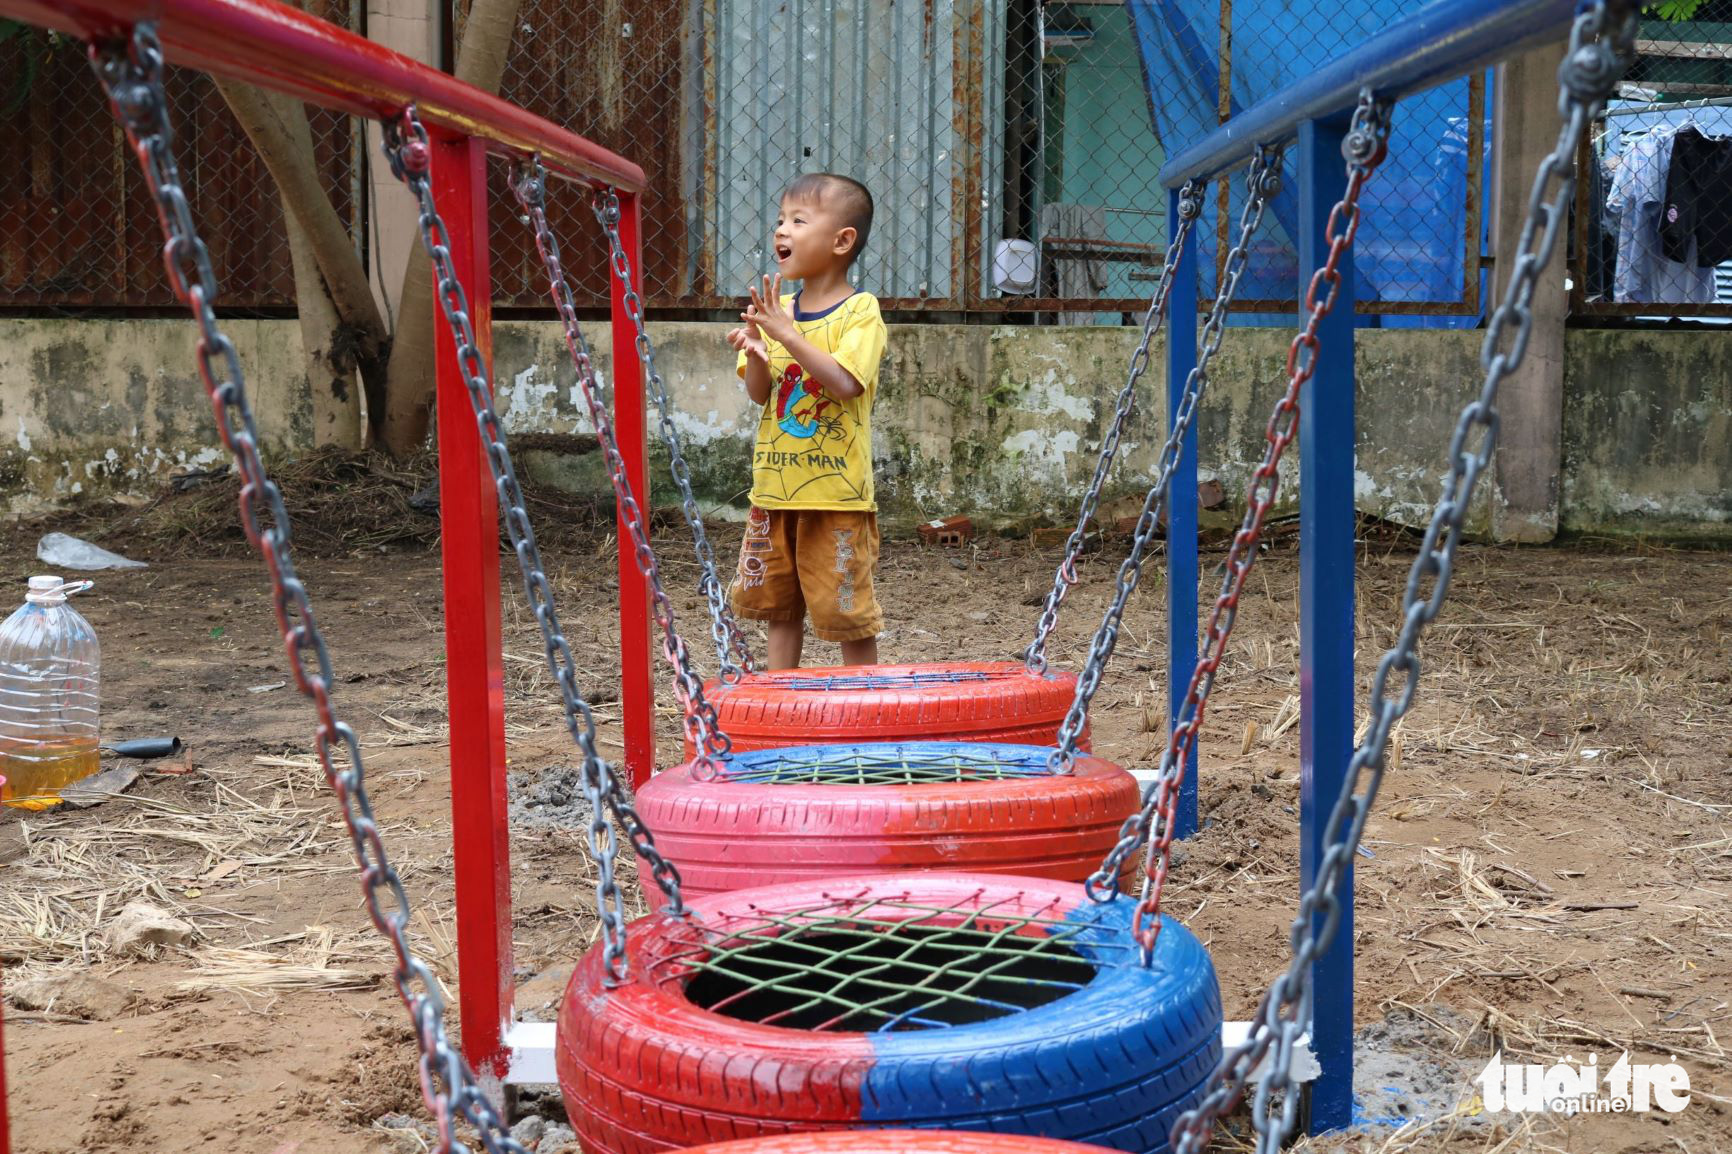 Upcycling old tires into toys for disadvantaged children Vietnam's remote areas